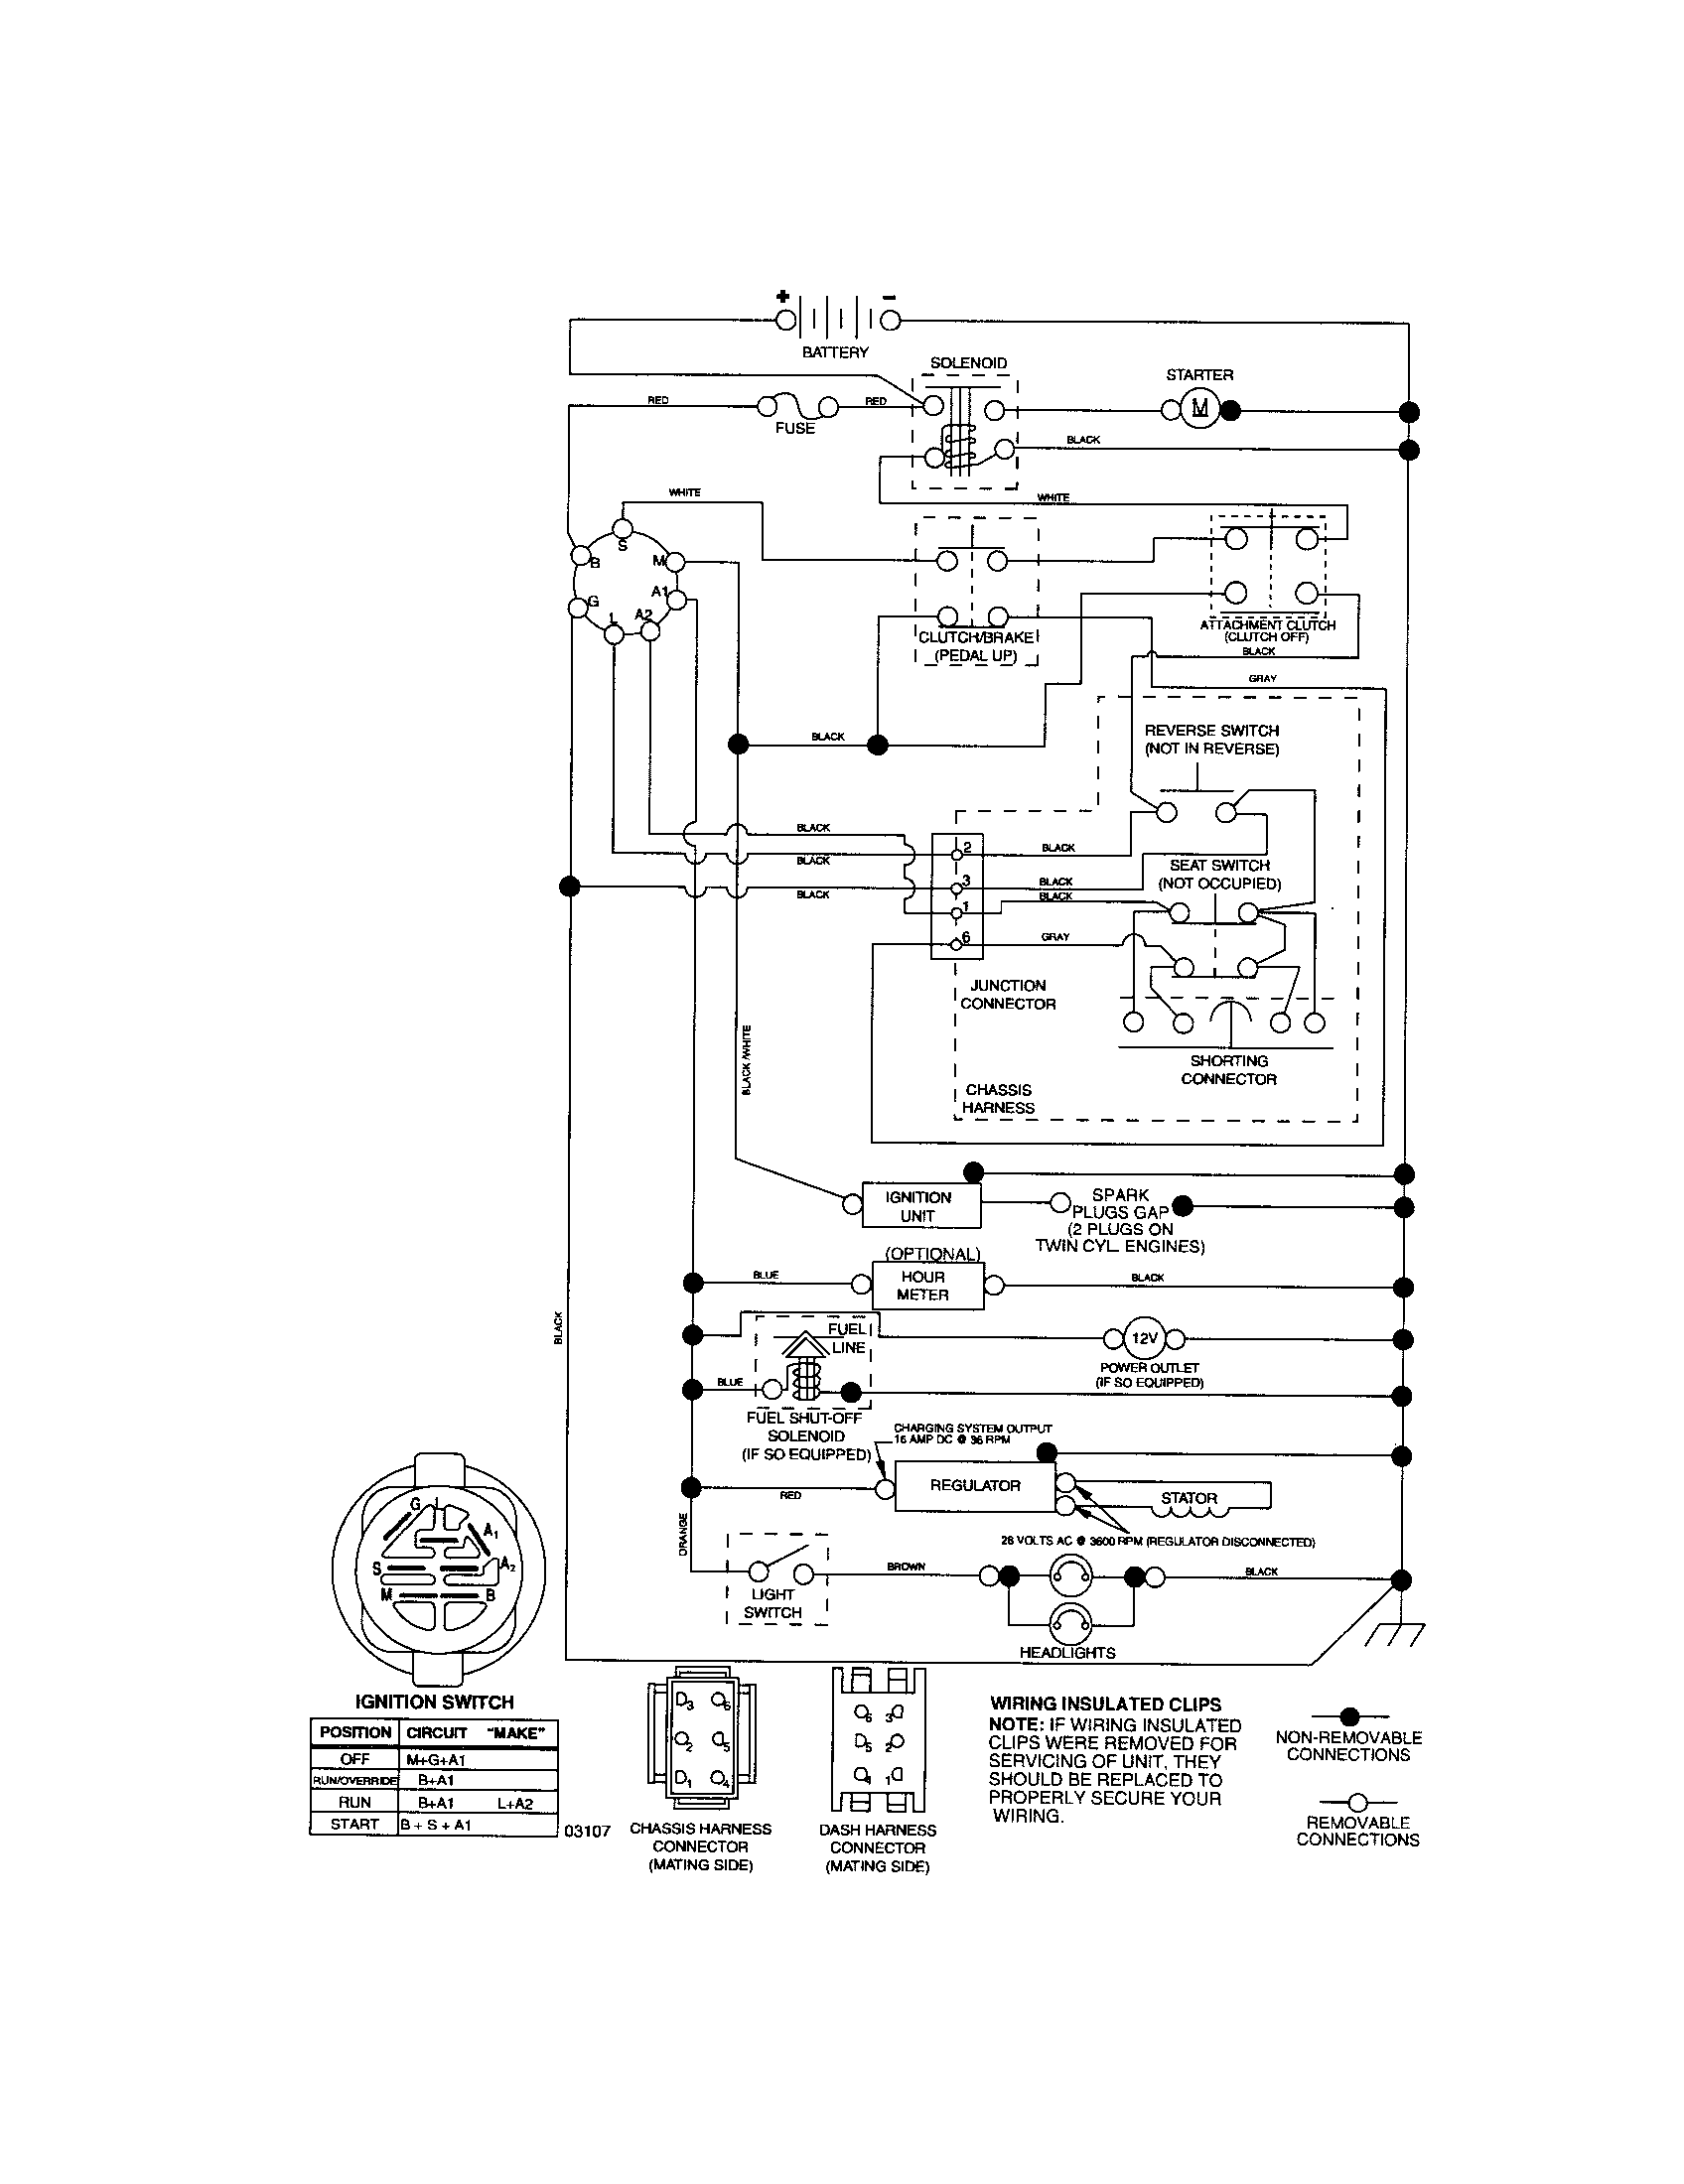 Wiring Diagram Craftsman Riding Lawn Mower I Need One For A Craftsman Garden Tractor I Know Craftsman Riding Lawn Mower Riding Lawn Mowers Lawn Mower Repair